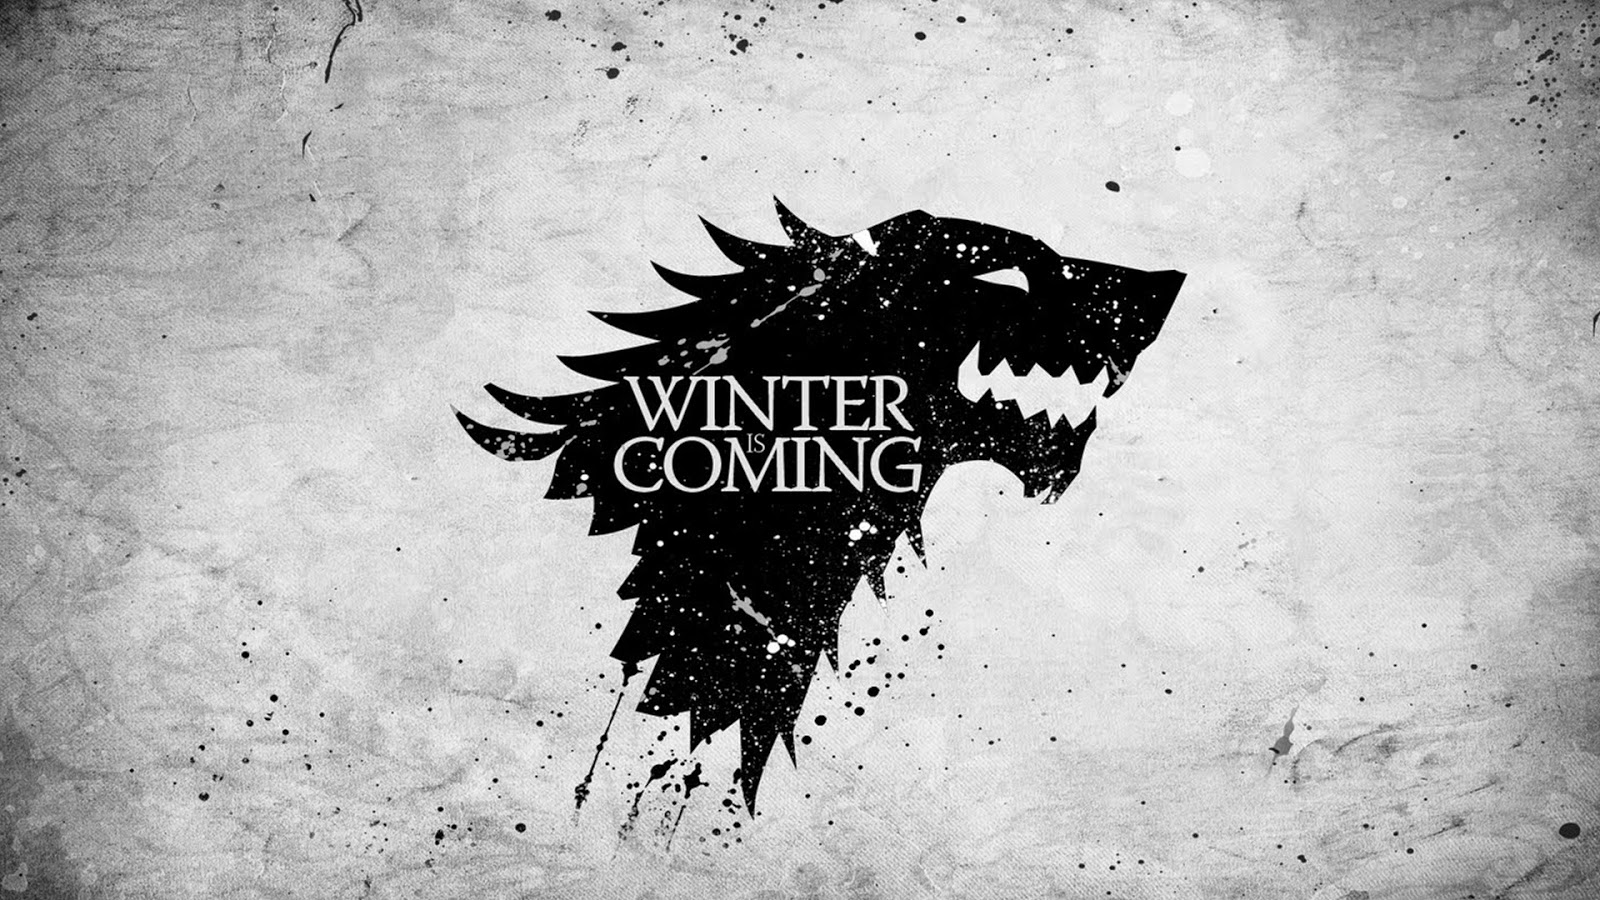 The Weekend Warrior 2.0: Brace Yourselves Winter is Coming....